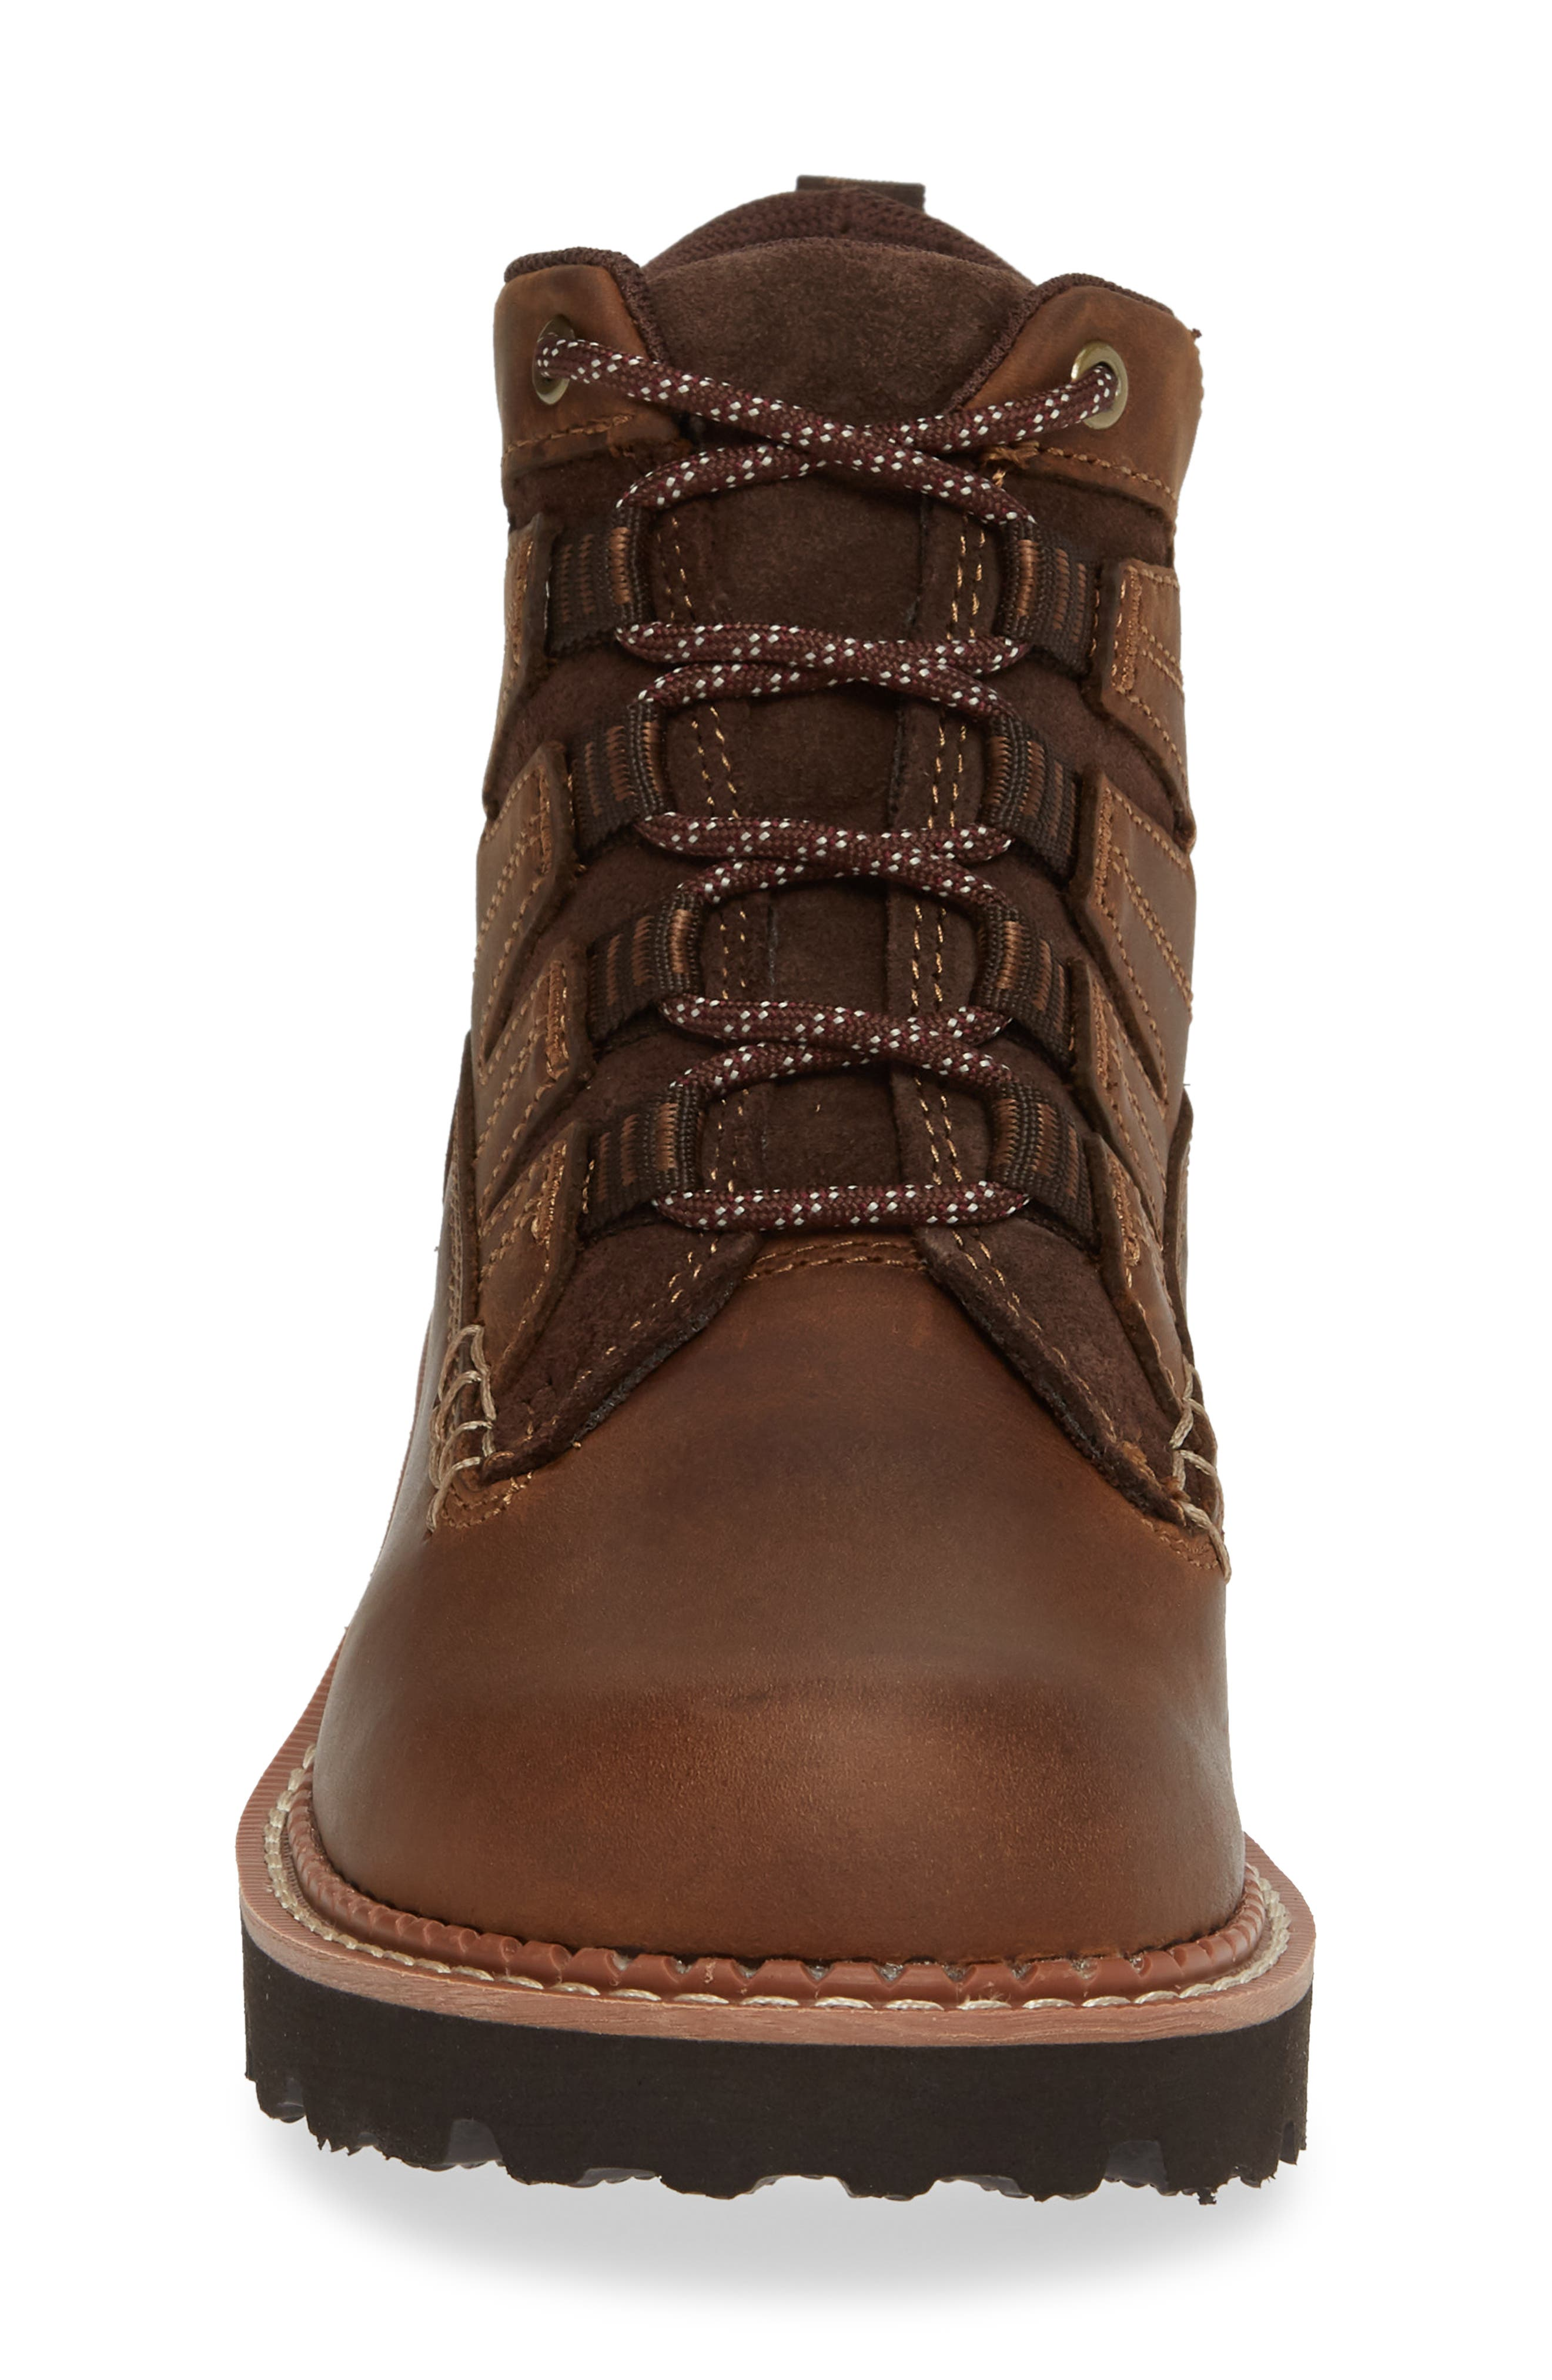 Canyon II Bootie,                             Alternate thumbnail 4, color,                             DISTRESSED BROWN LEATHER